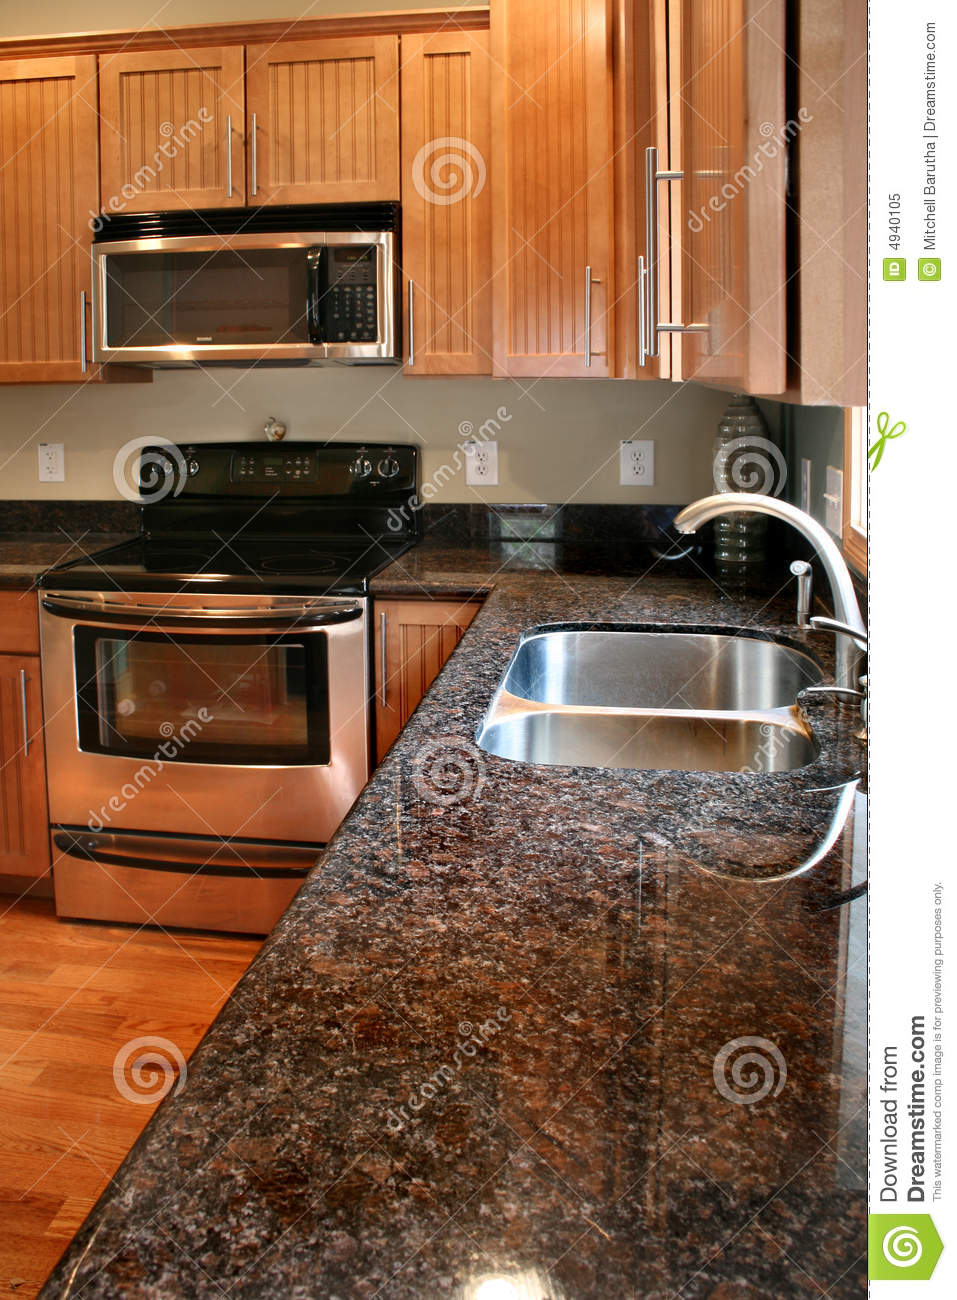 Kitchen Wood Cabinets Black And Stainless Stove Royalty Free Stock Photo - Image: 4940105